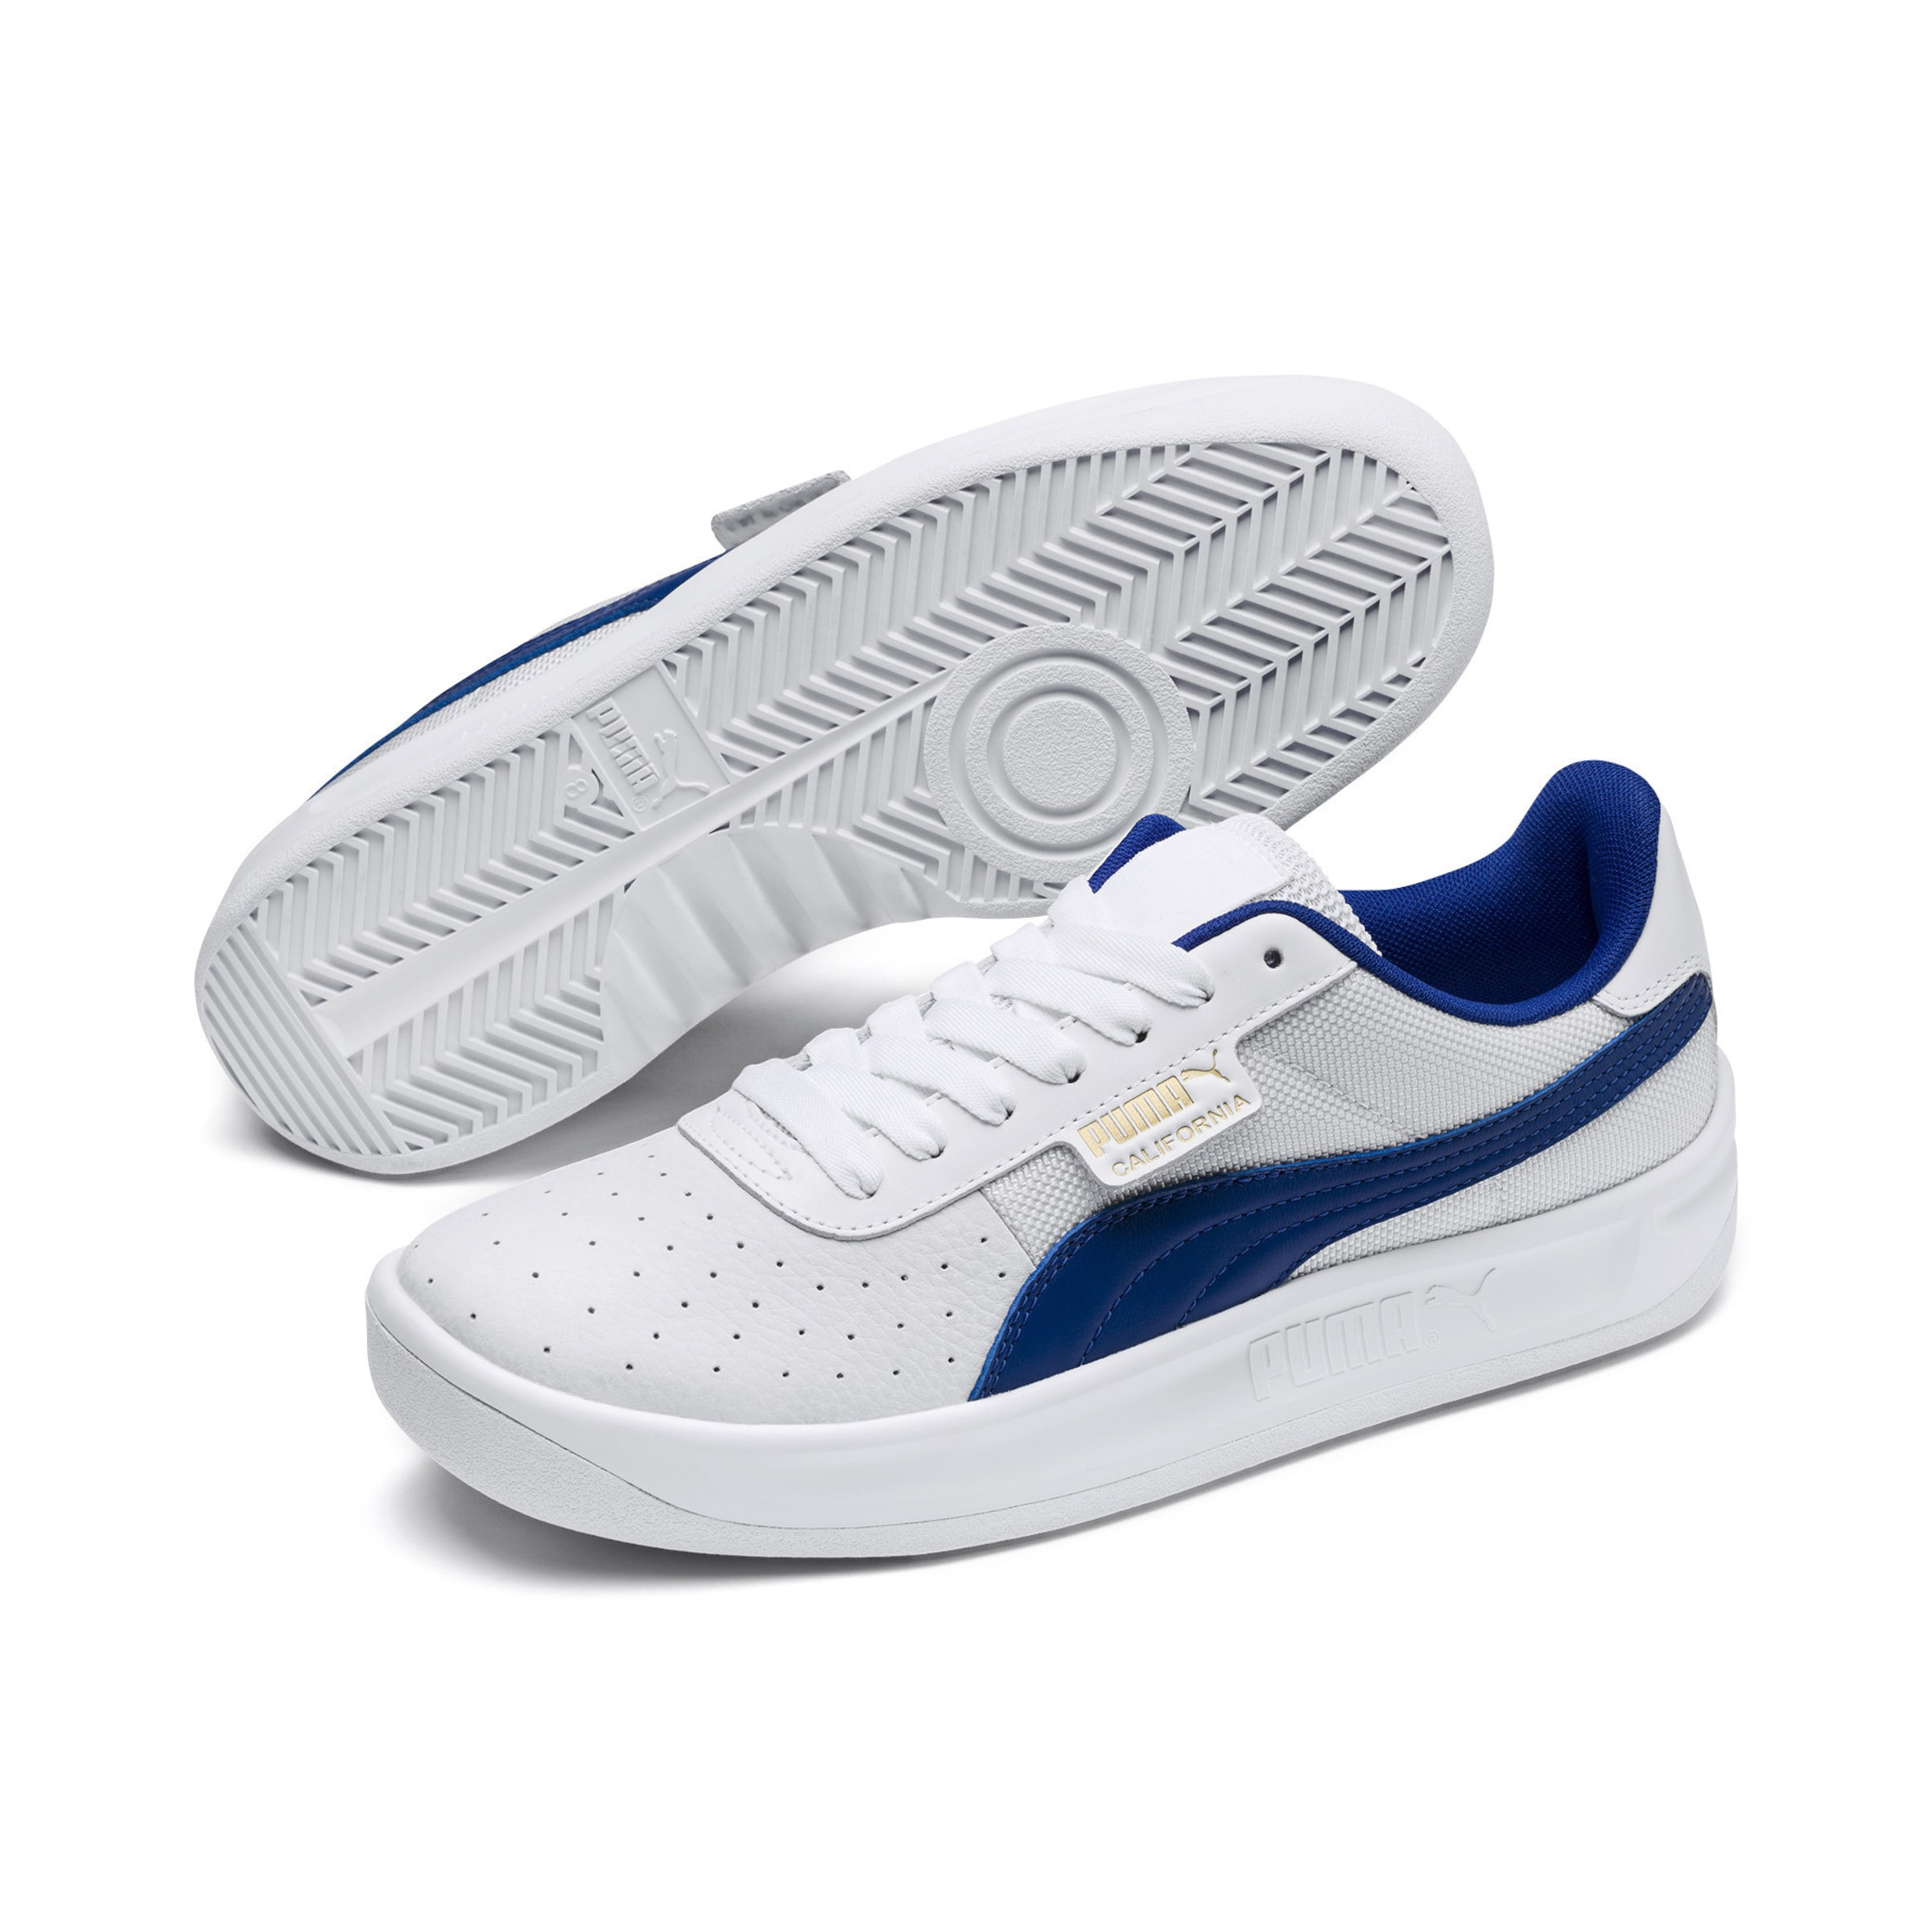 Basses 'california' BleuBlanc Puma Baskets En QxoBerdCW